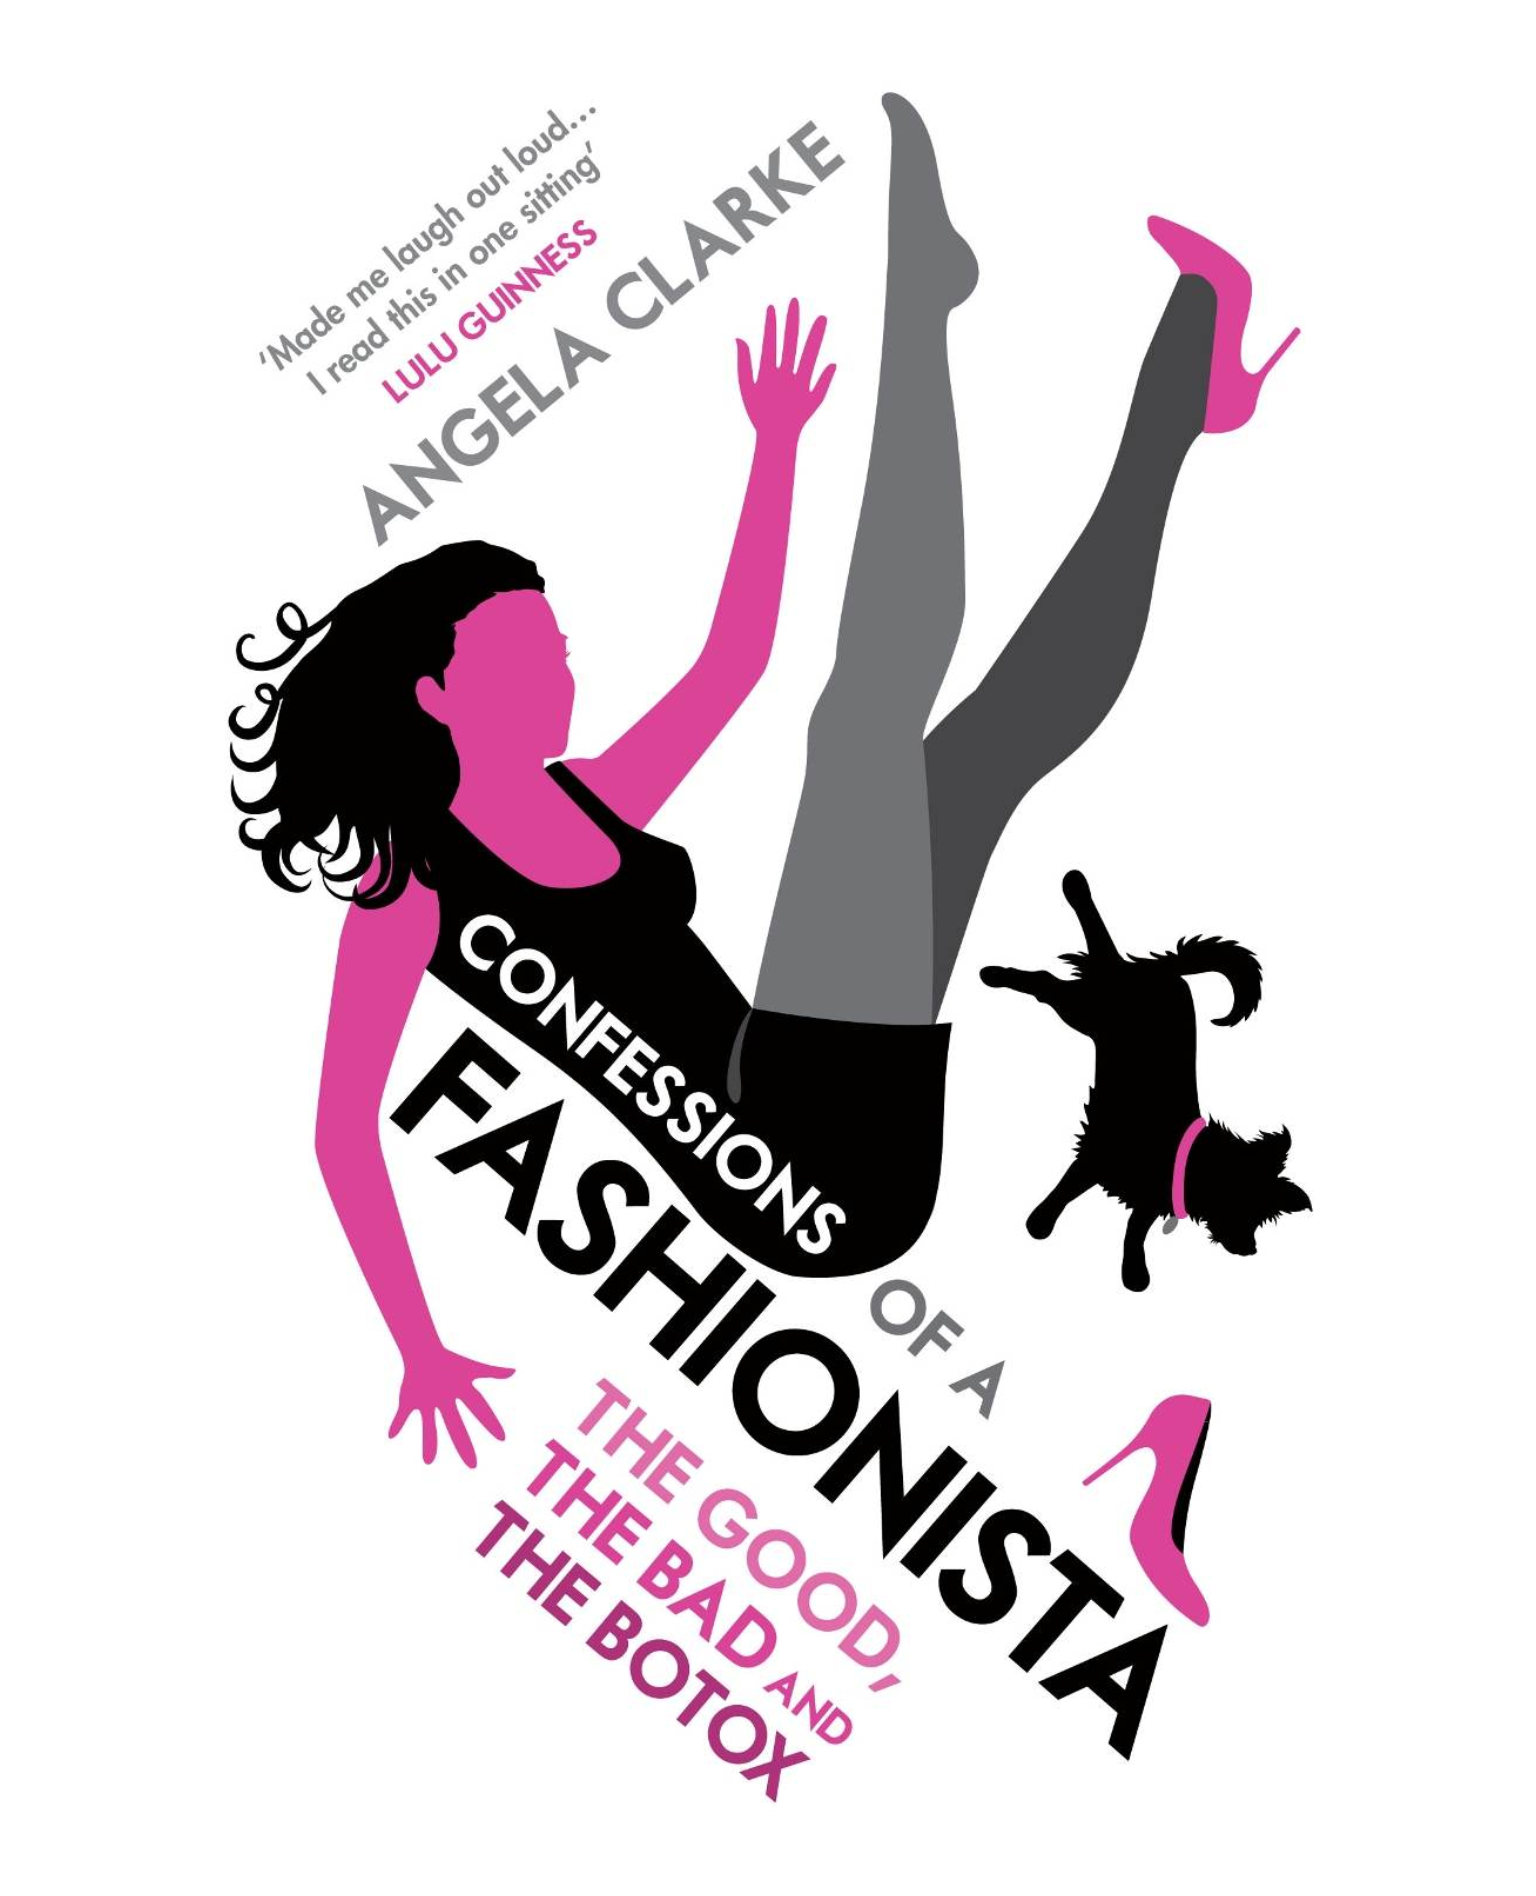 Book review: confessions of a fashionista